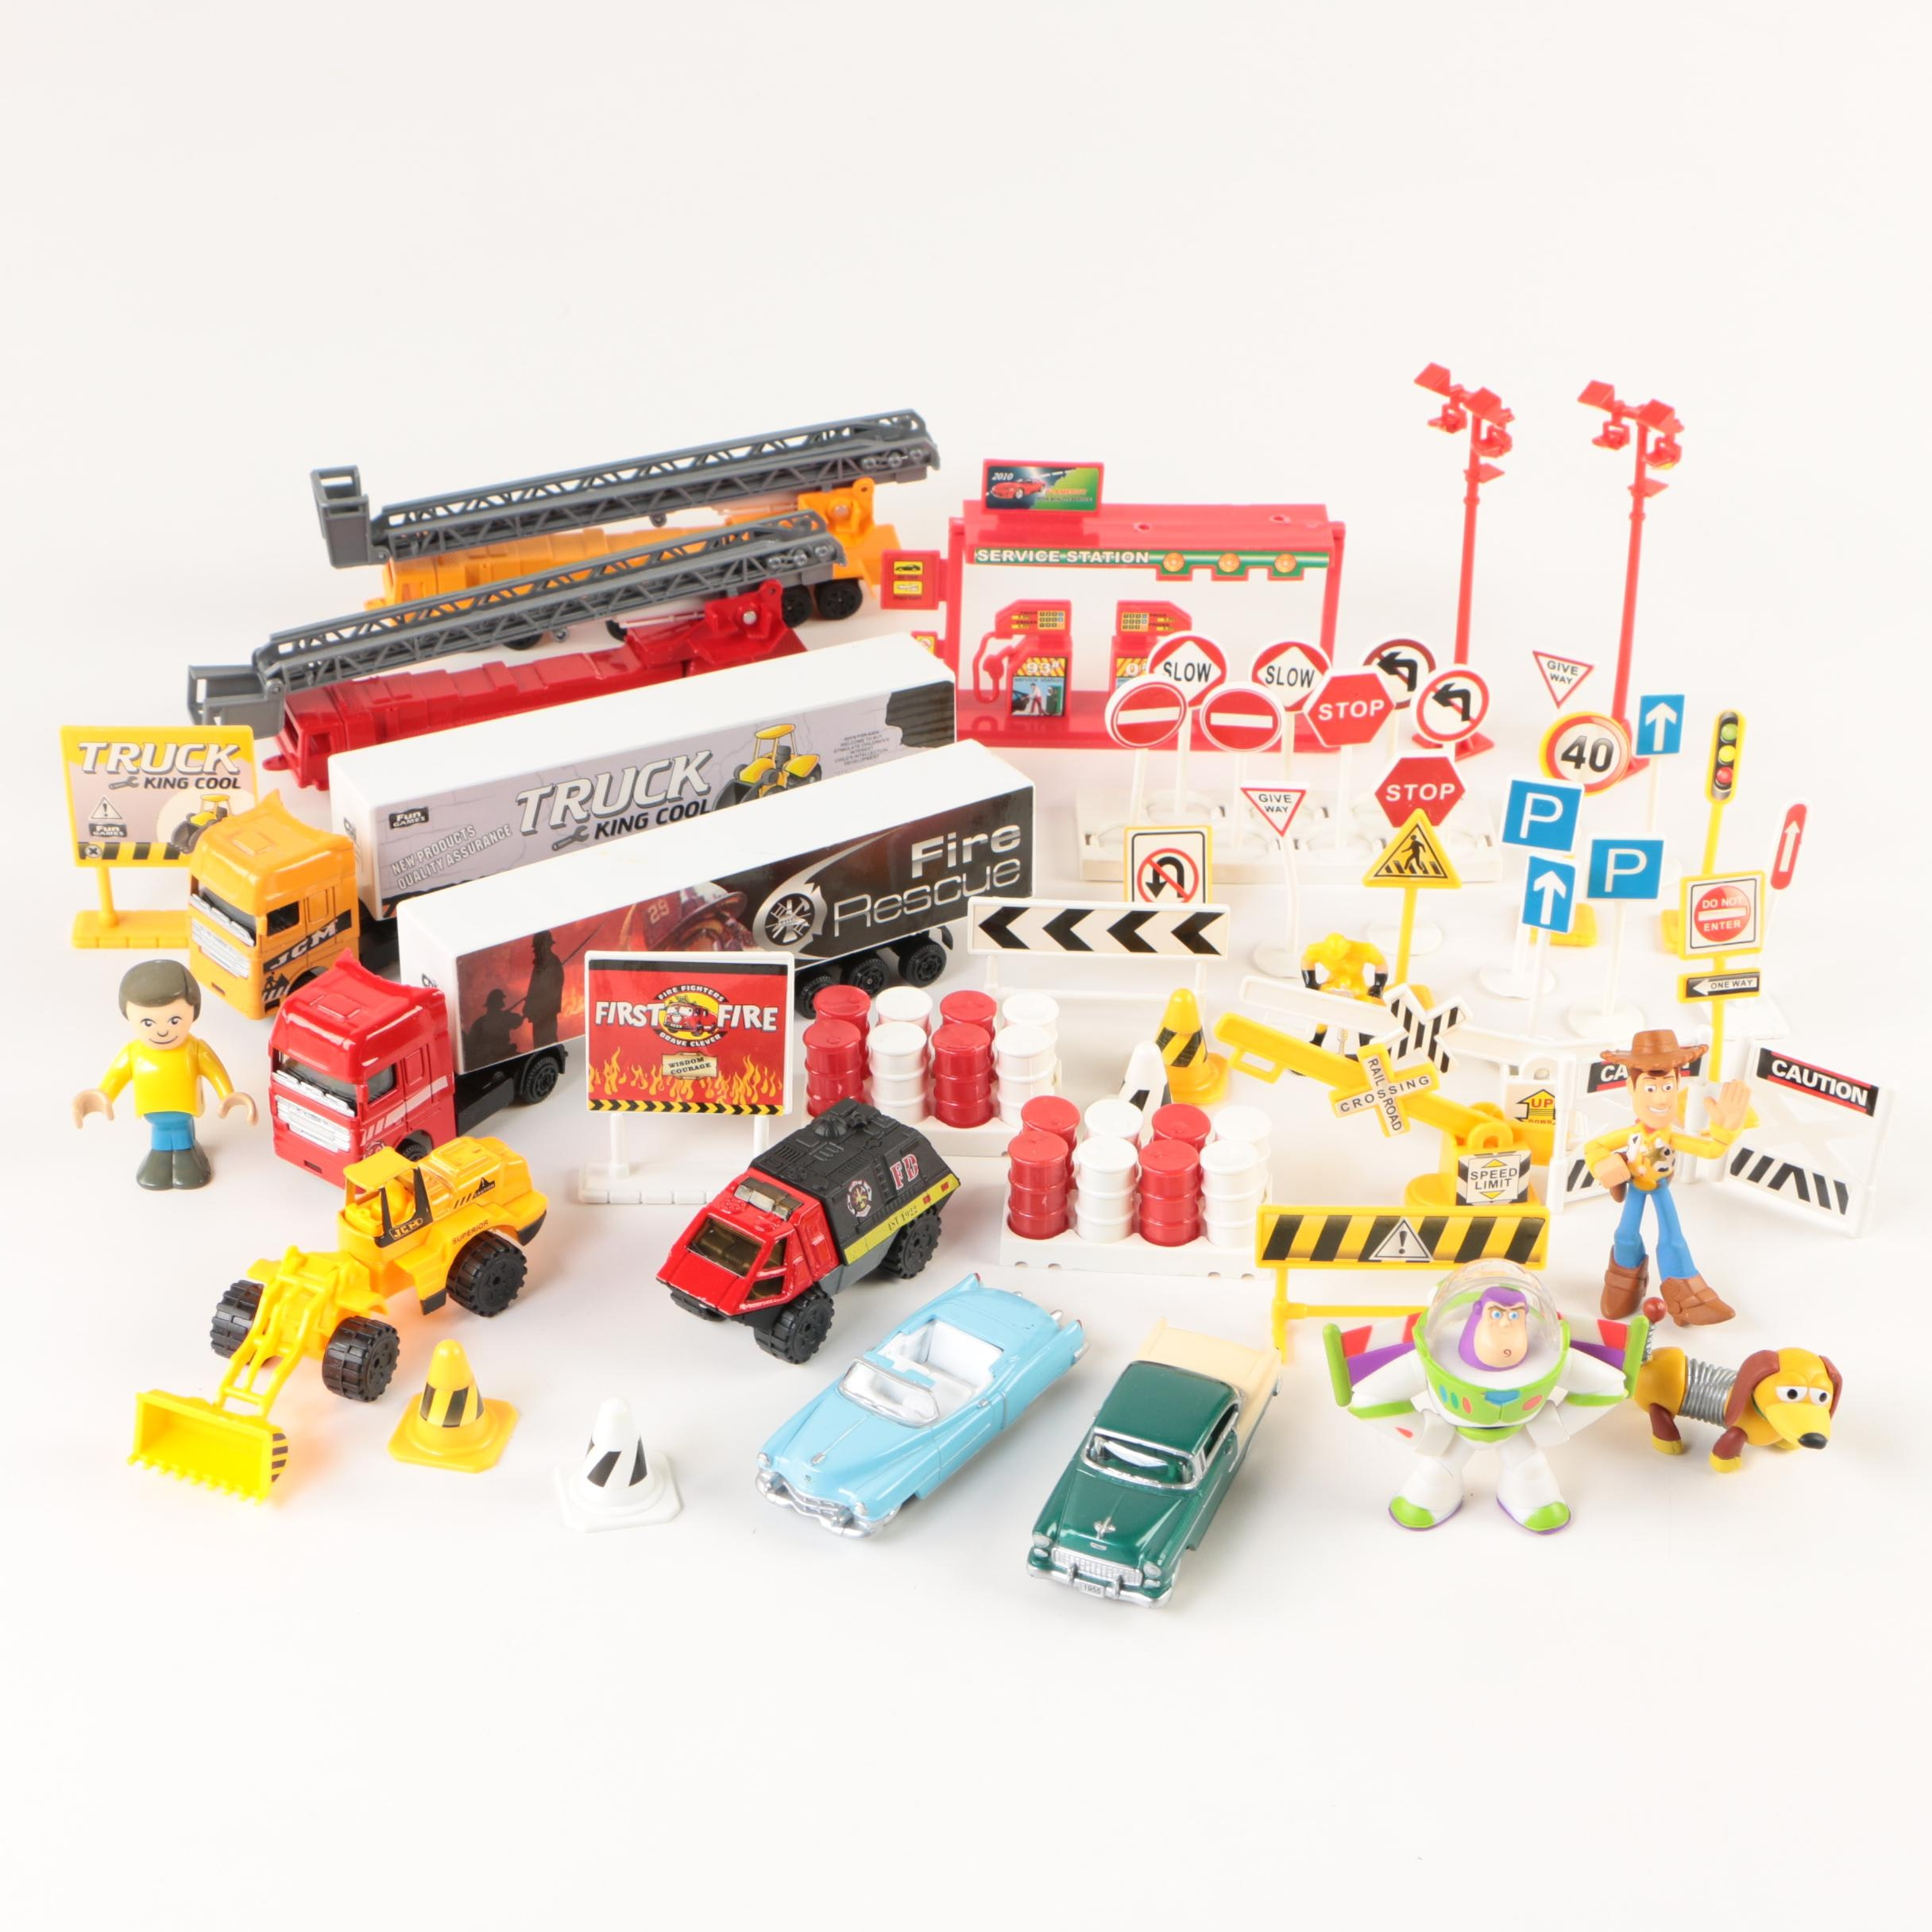 """Toy Trucks and Cars with Accessories including """"Toy Story"""" Figures"""